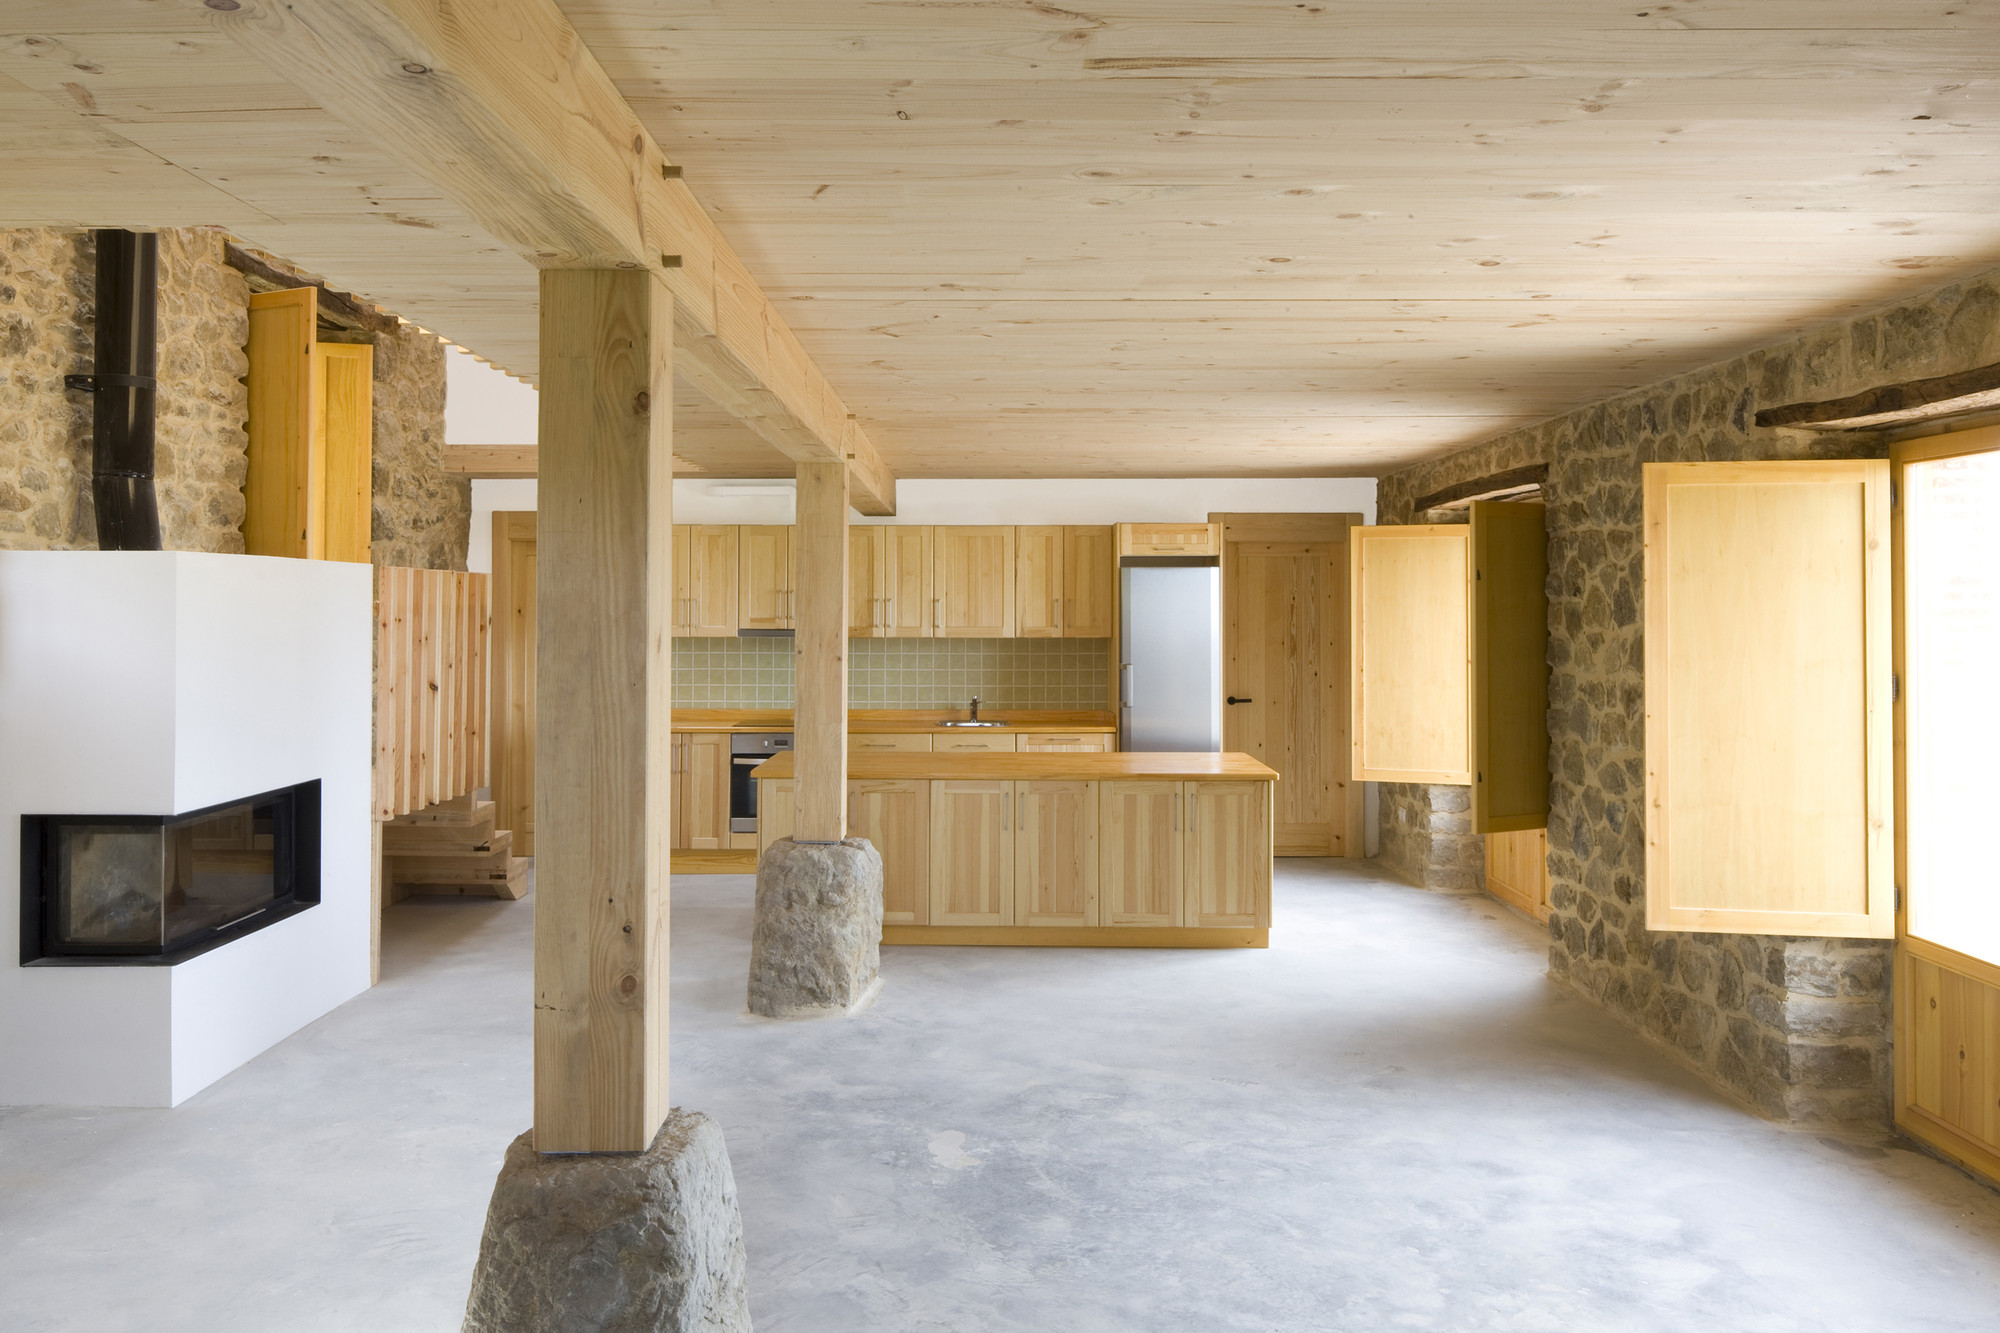 Country House Renovation / 2260mm Arquitectes - ArchDaily